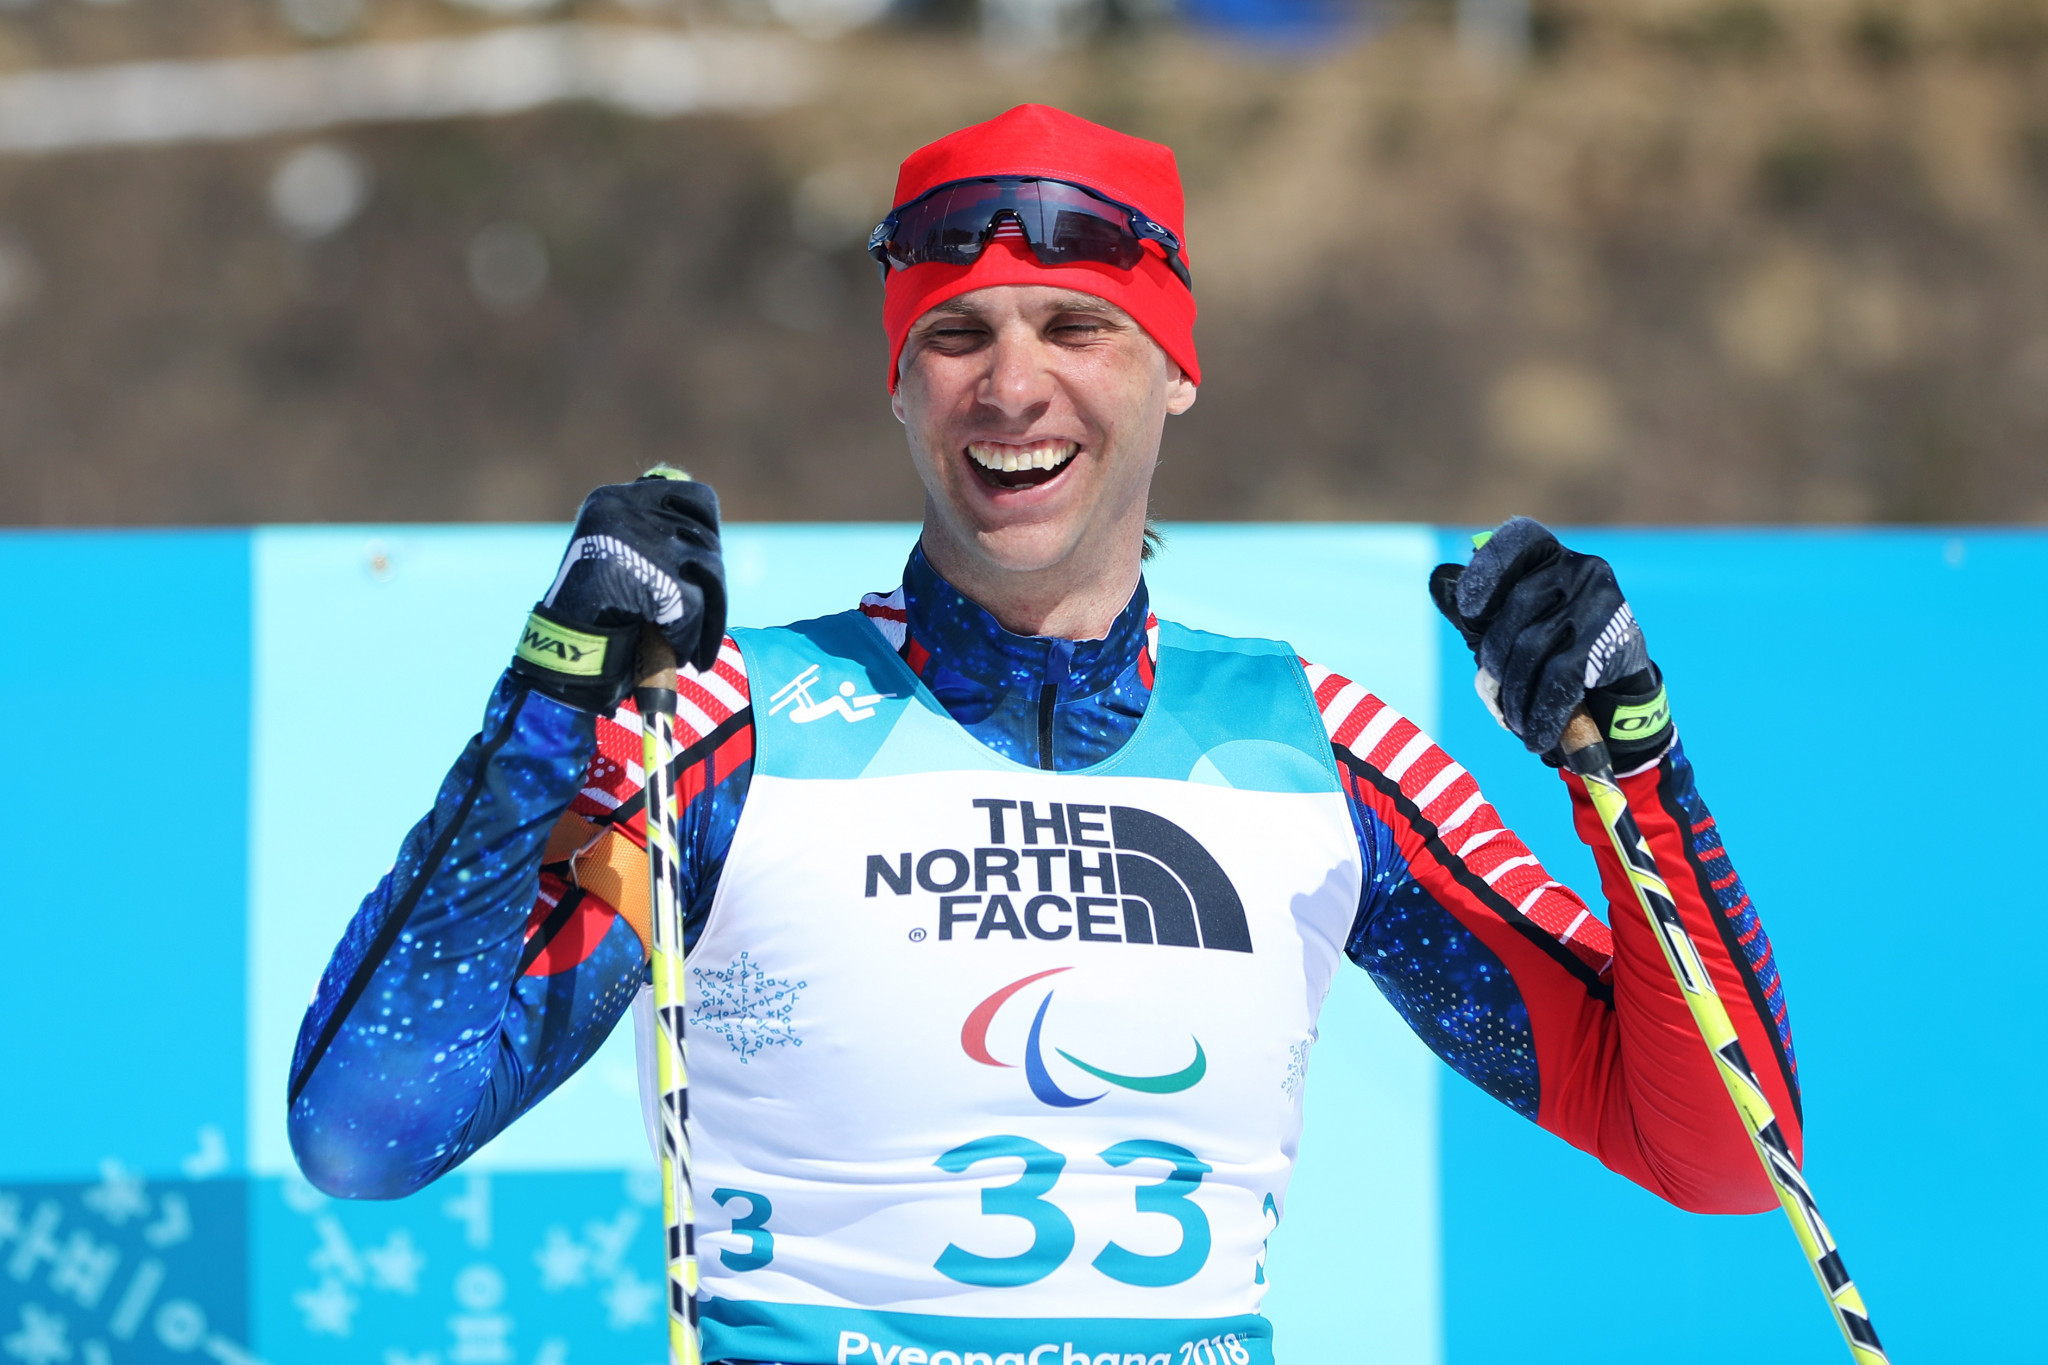 Soule wins Paralympic cross-country sprint gold in tense photo finish